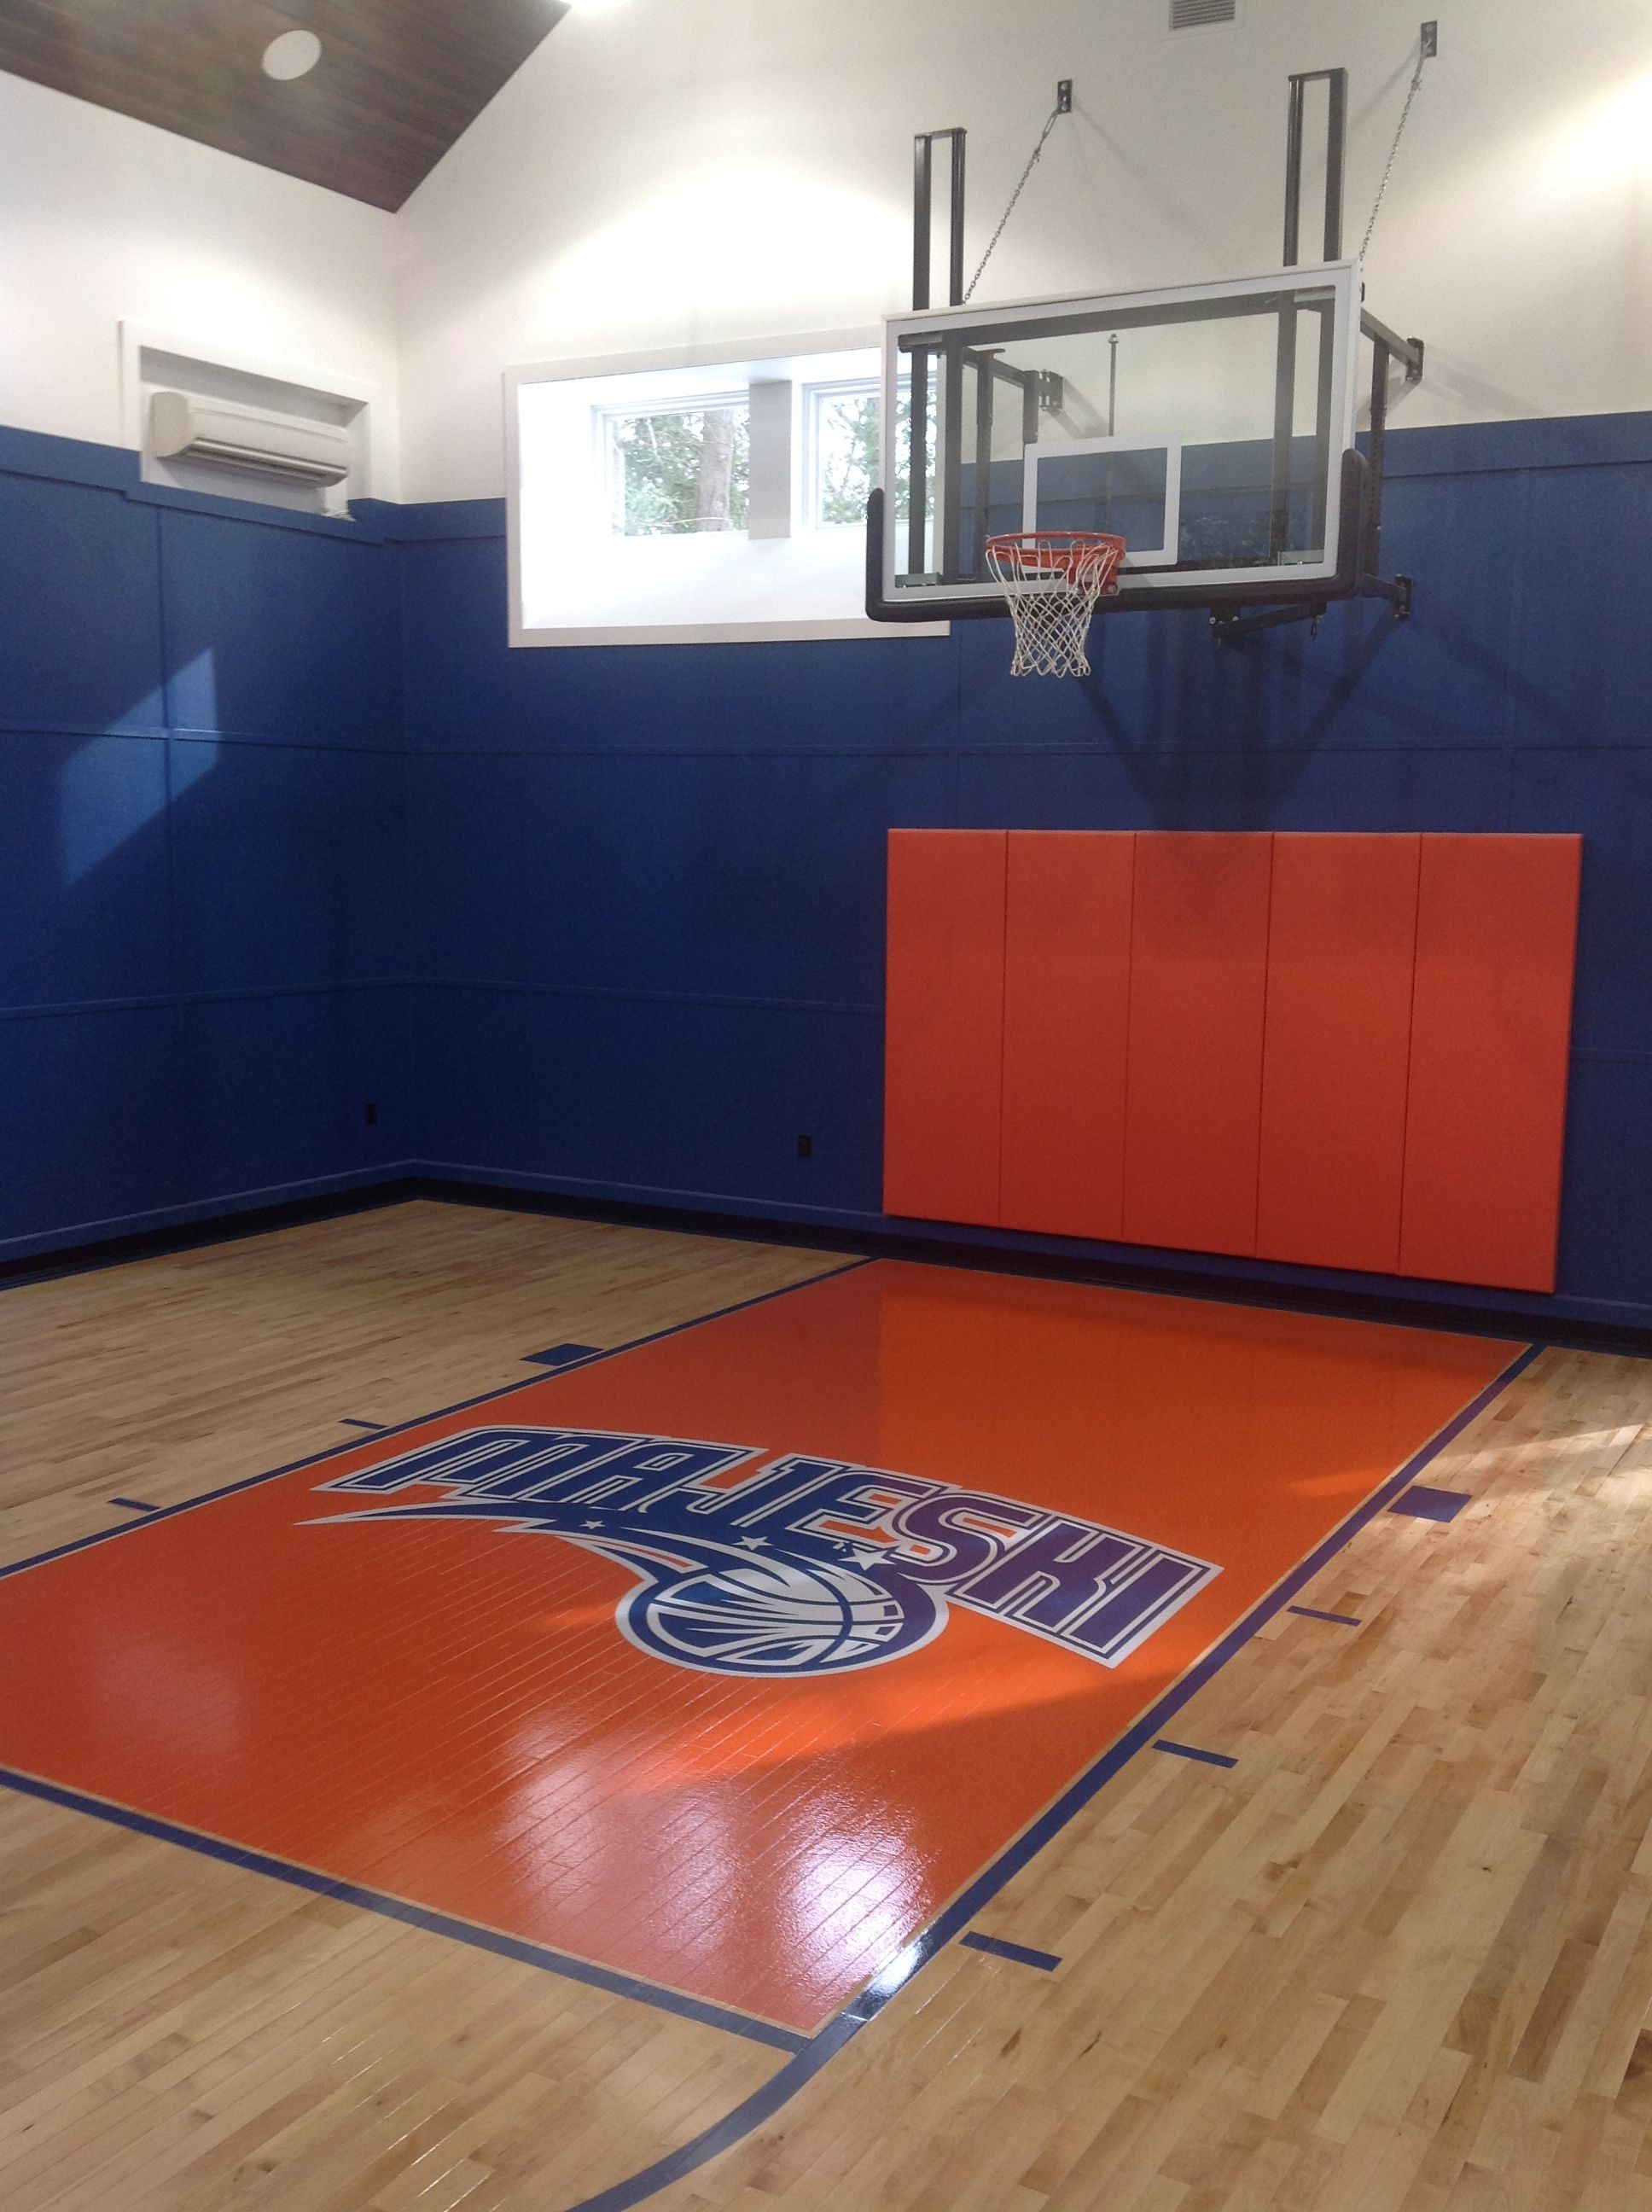 Indoor basketball court at a residence in Princeton, NJ ...